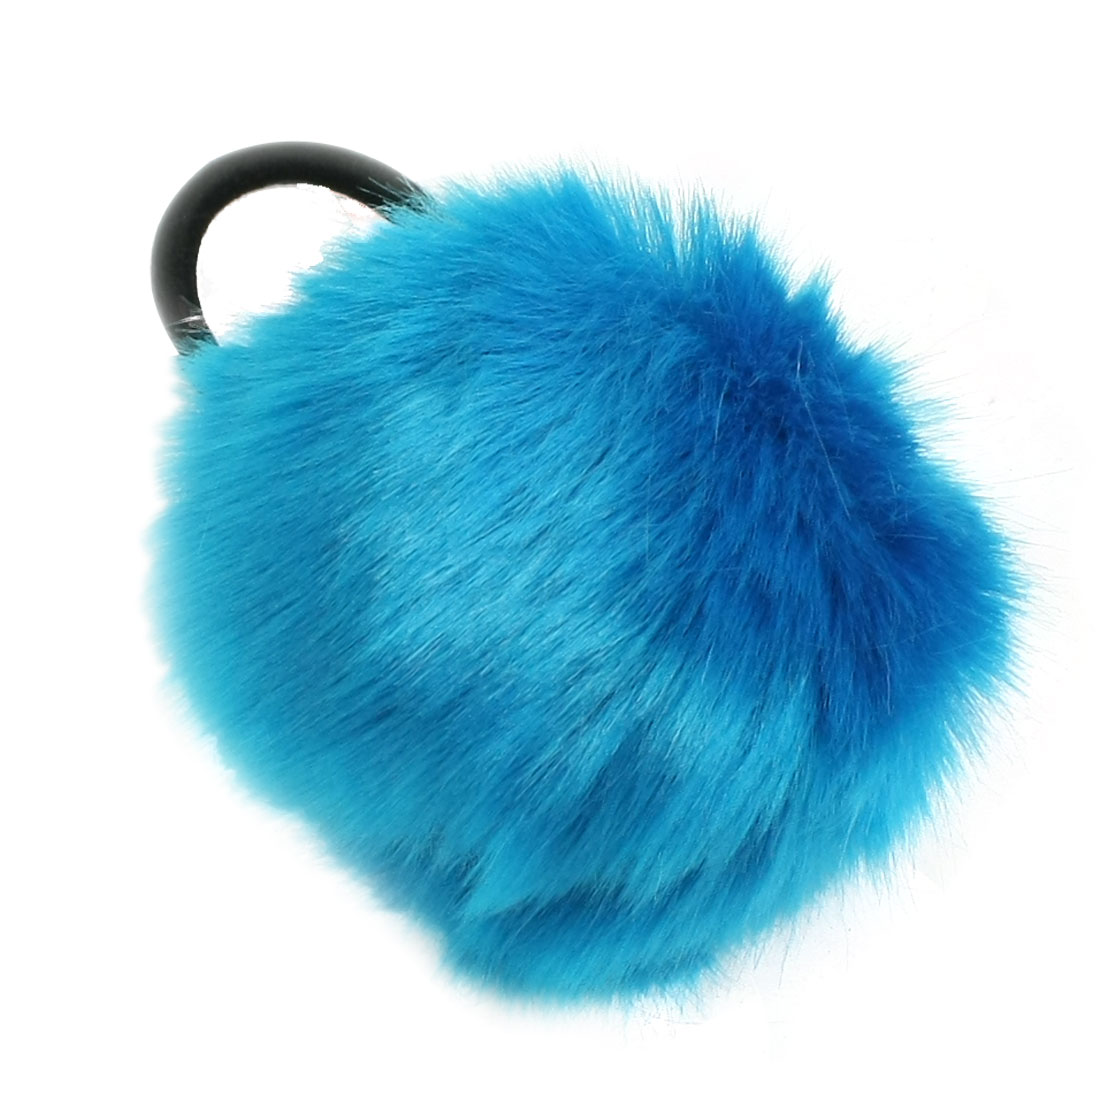 Blue Pom Pom Decor Black Stretchy Band Hair Tie Ponytail Hairband for Ladies